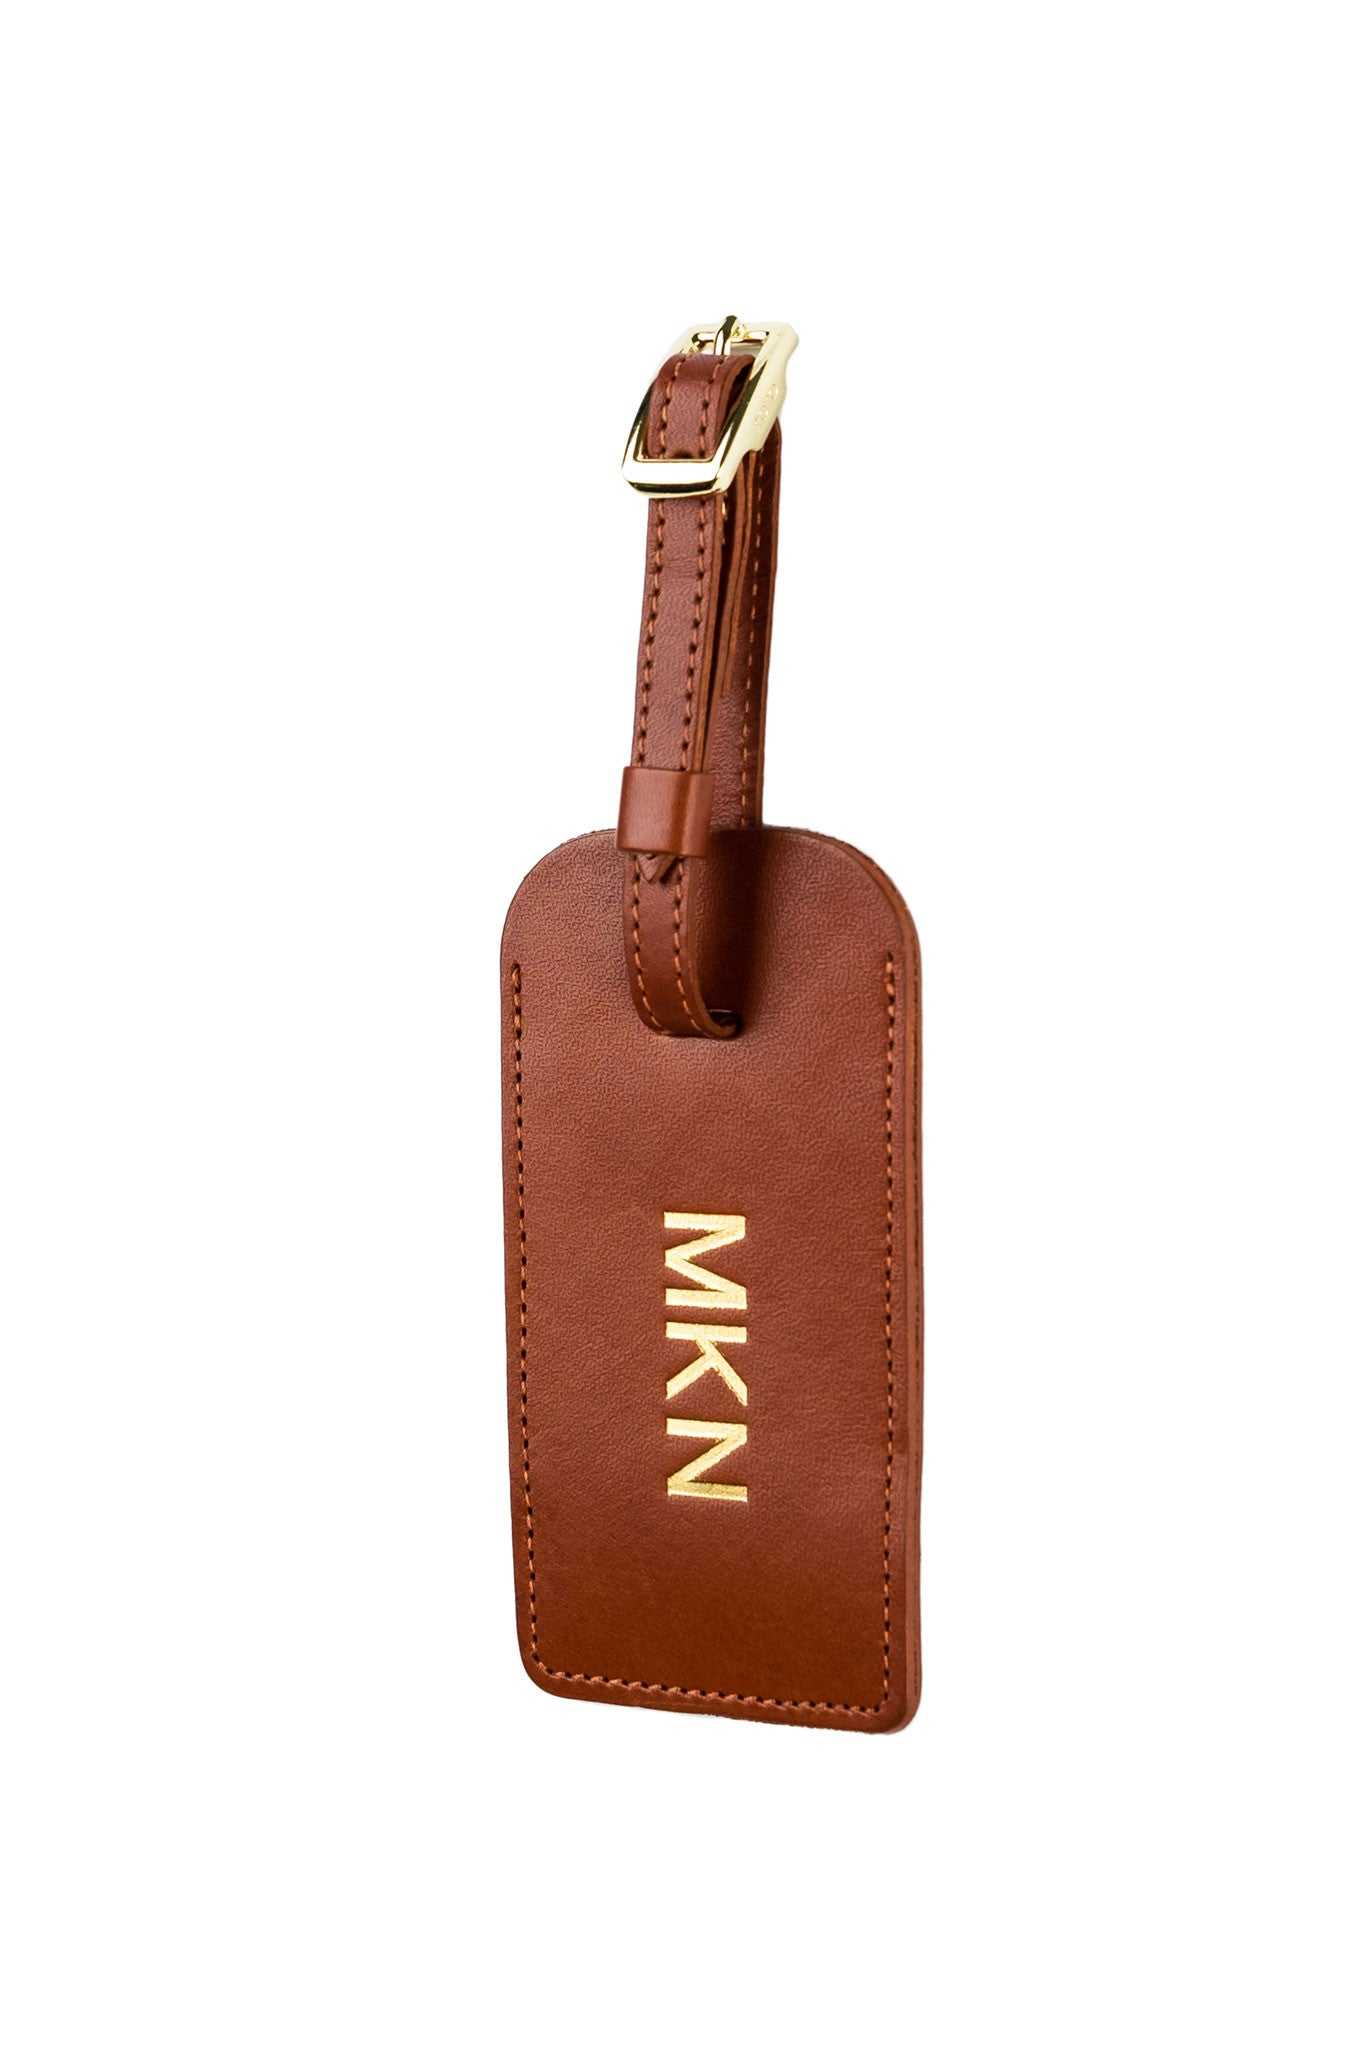 FOTO | Cognac Leather Luggage Tag for Businesses - genuine leather luggage tag that can be personalized with gold foil initials, a monogram or business logo making it the perfect personalized travel gift.